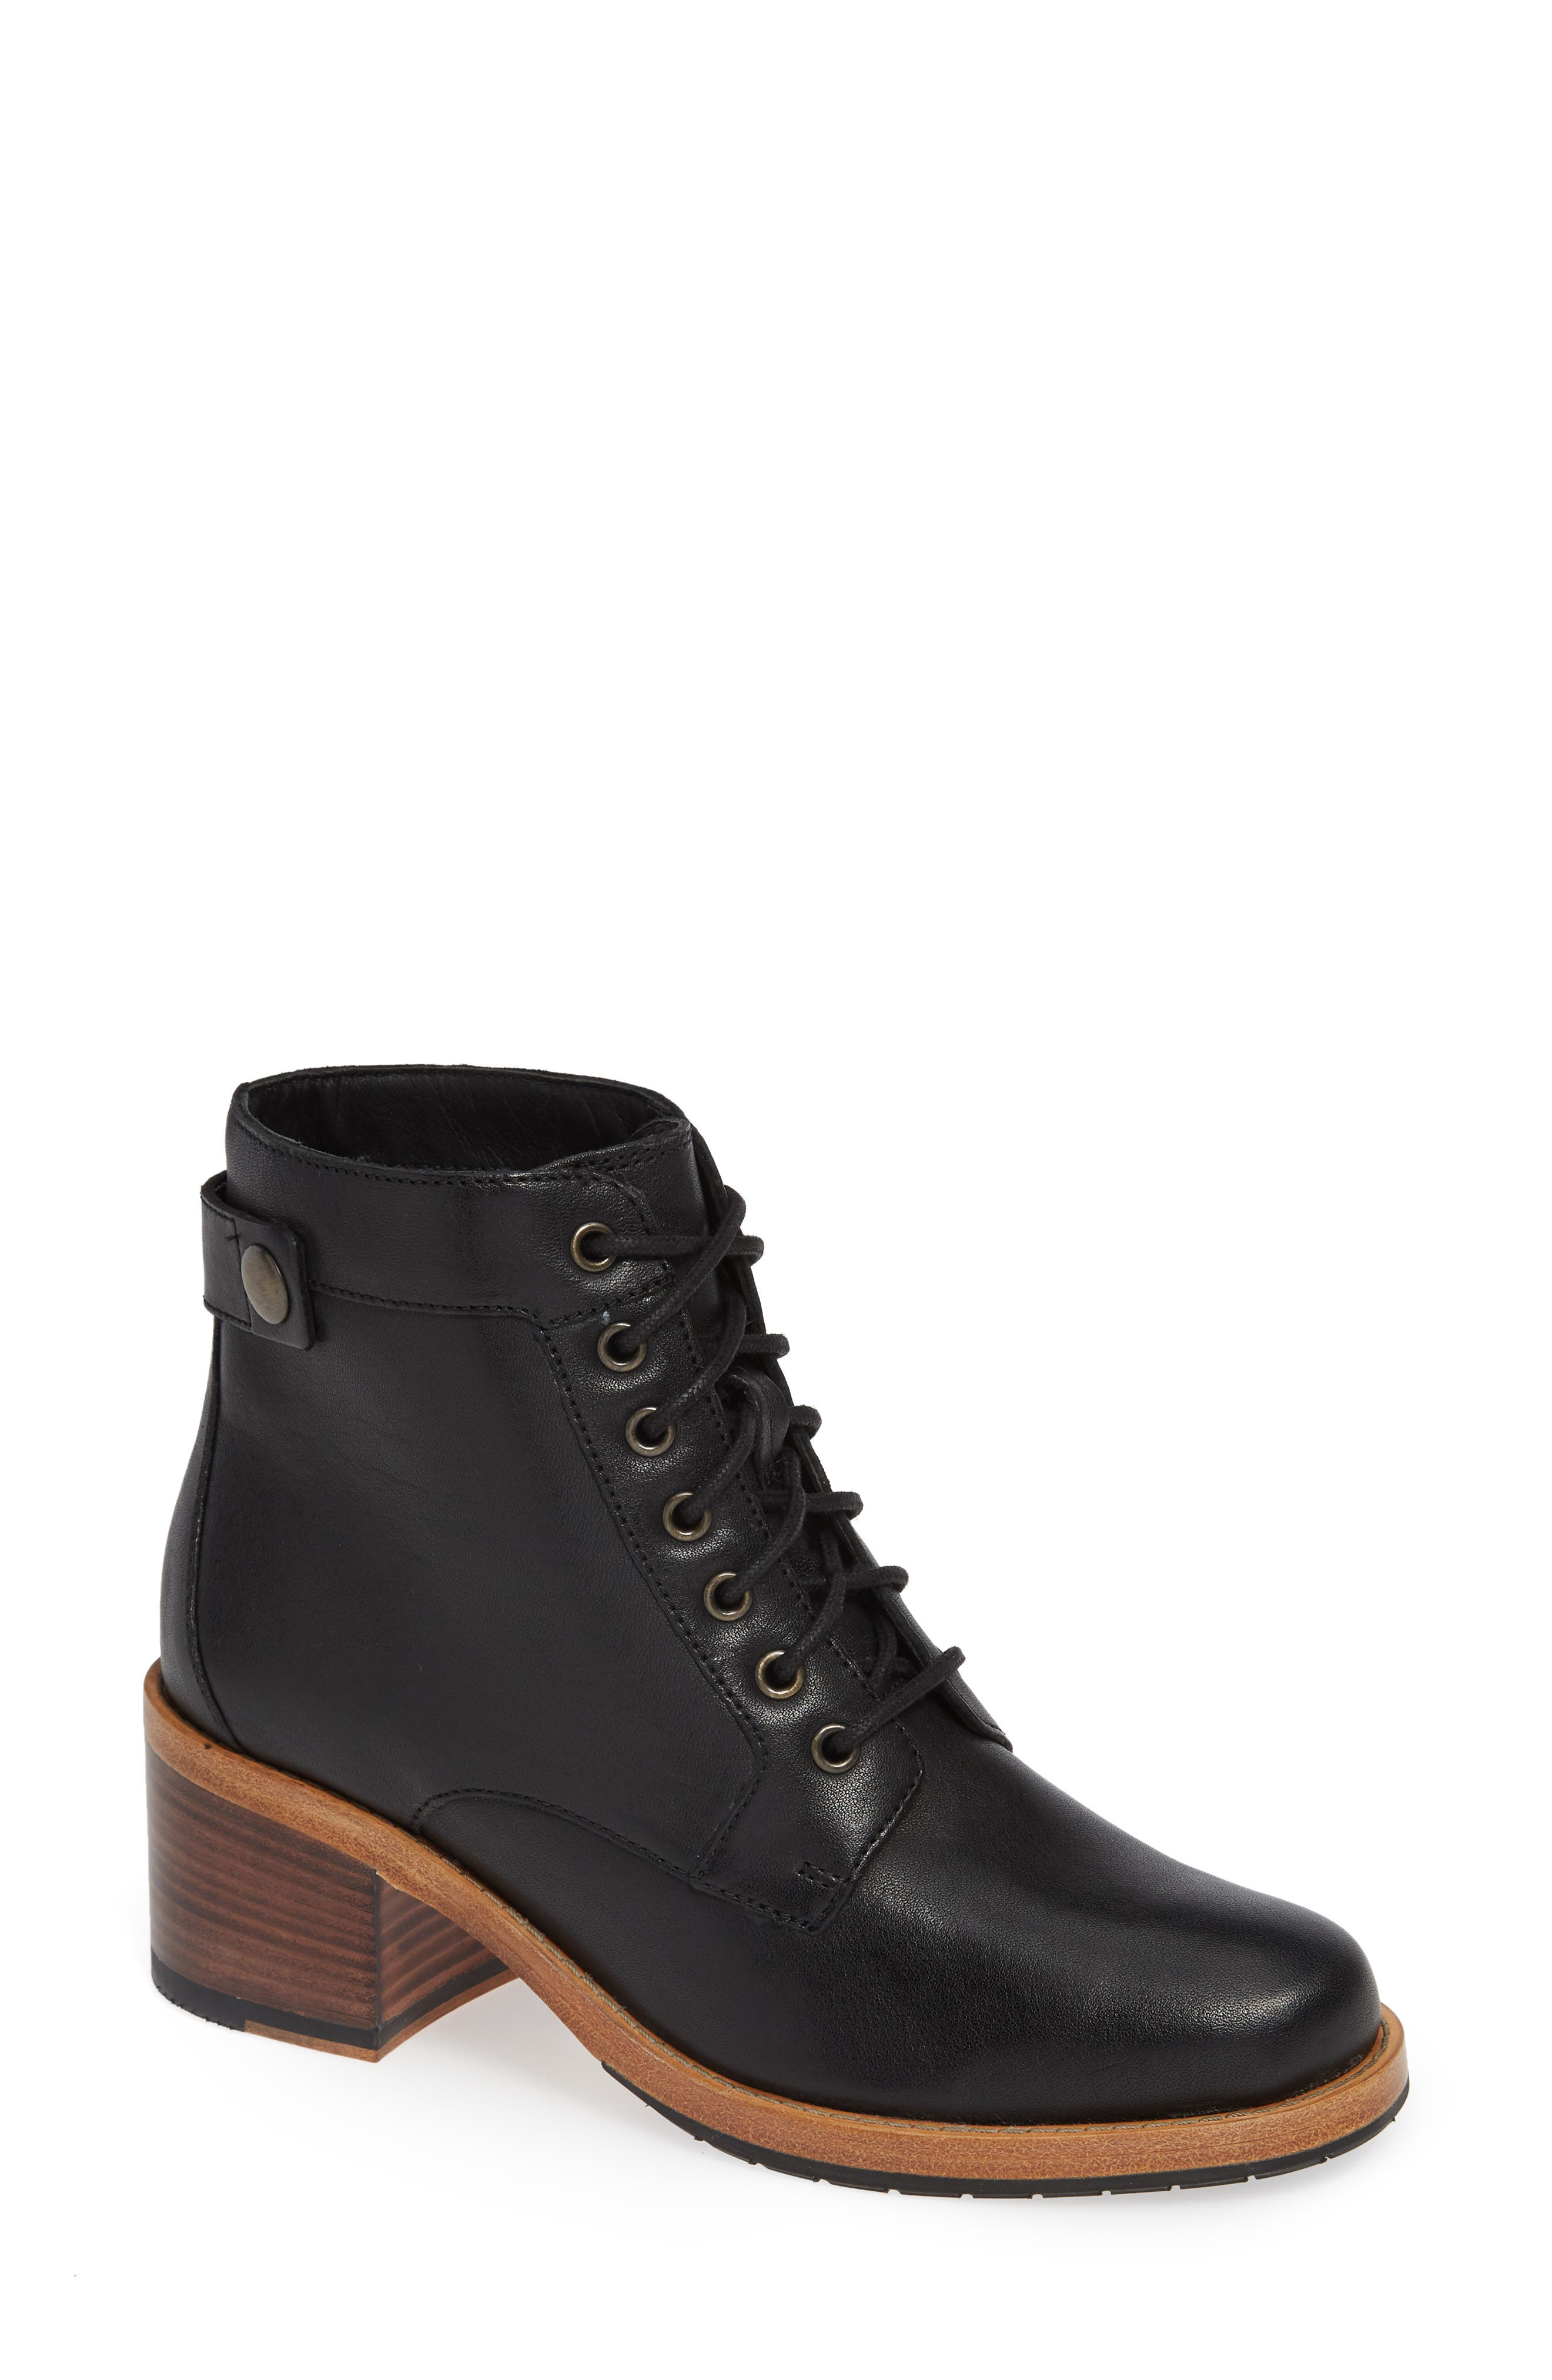 Clarkdale Combat Boot,                             Main thumbnail 1, color,                             BLACK LEATHER